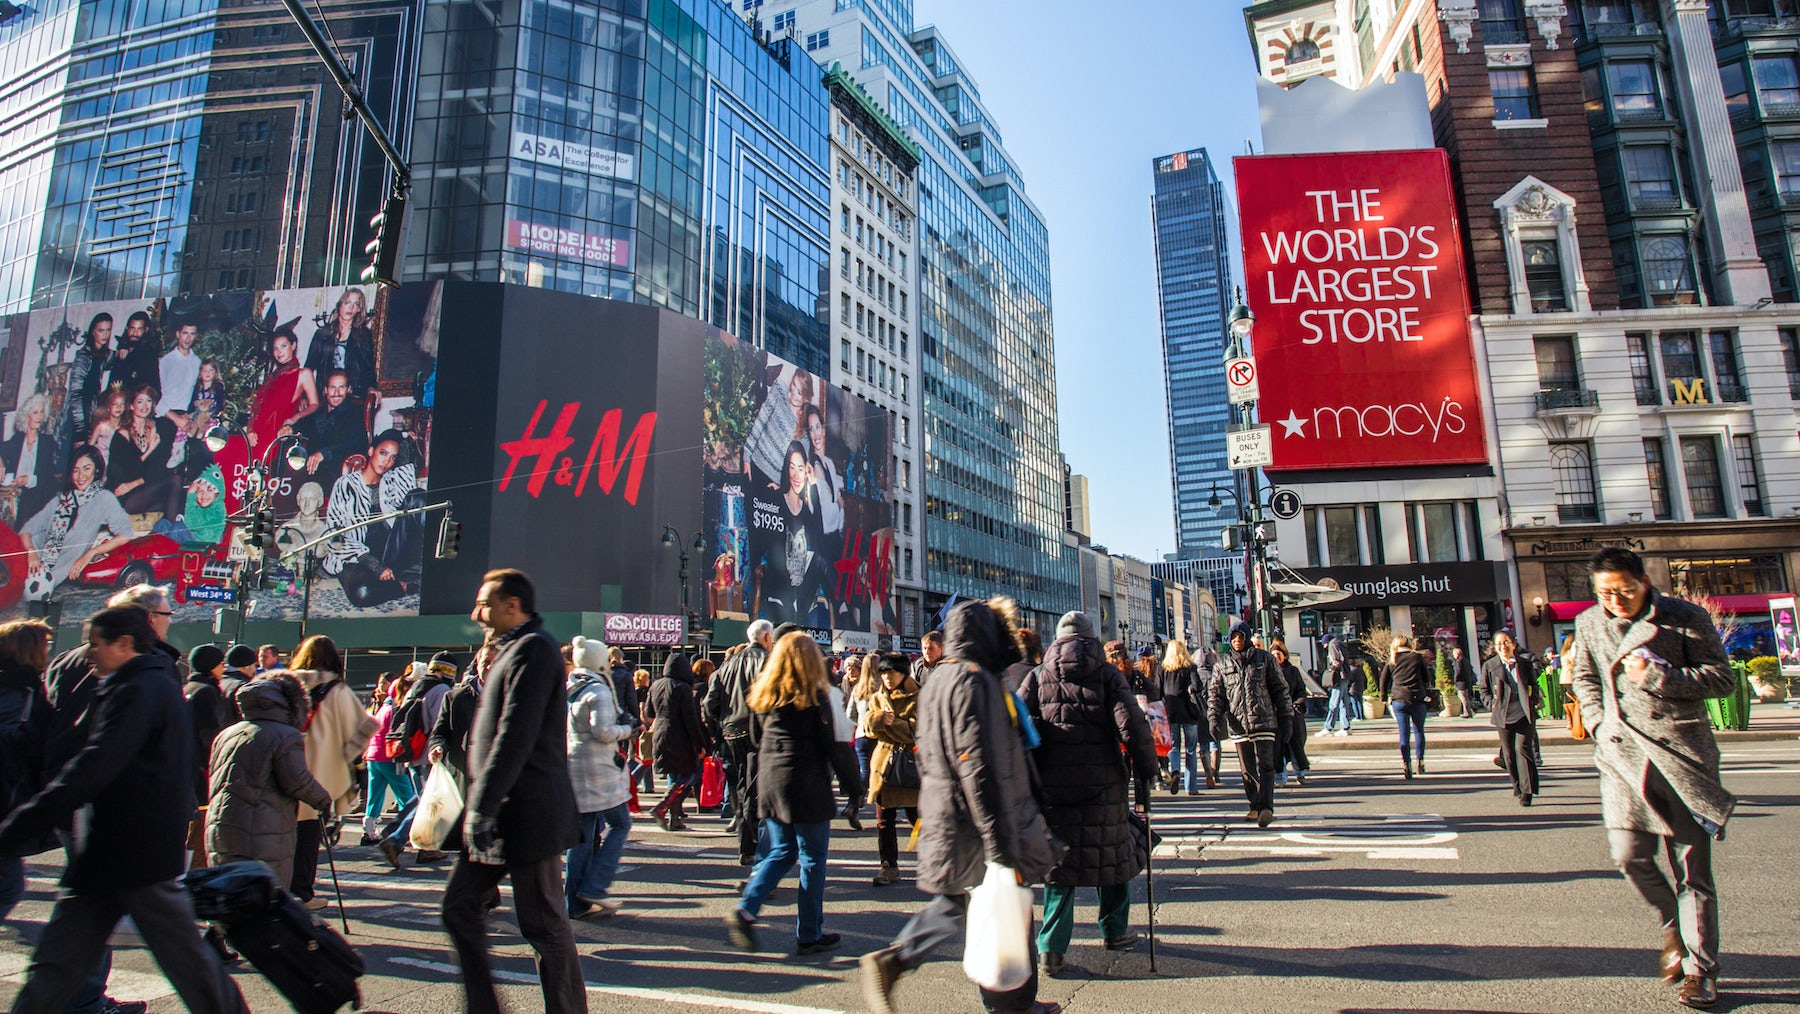 Holiday shoppers in New York | Source: Shutterstock